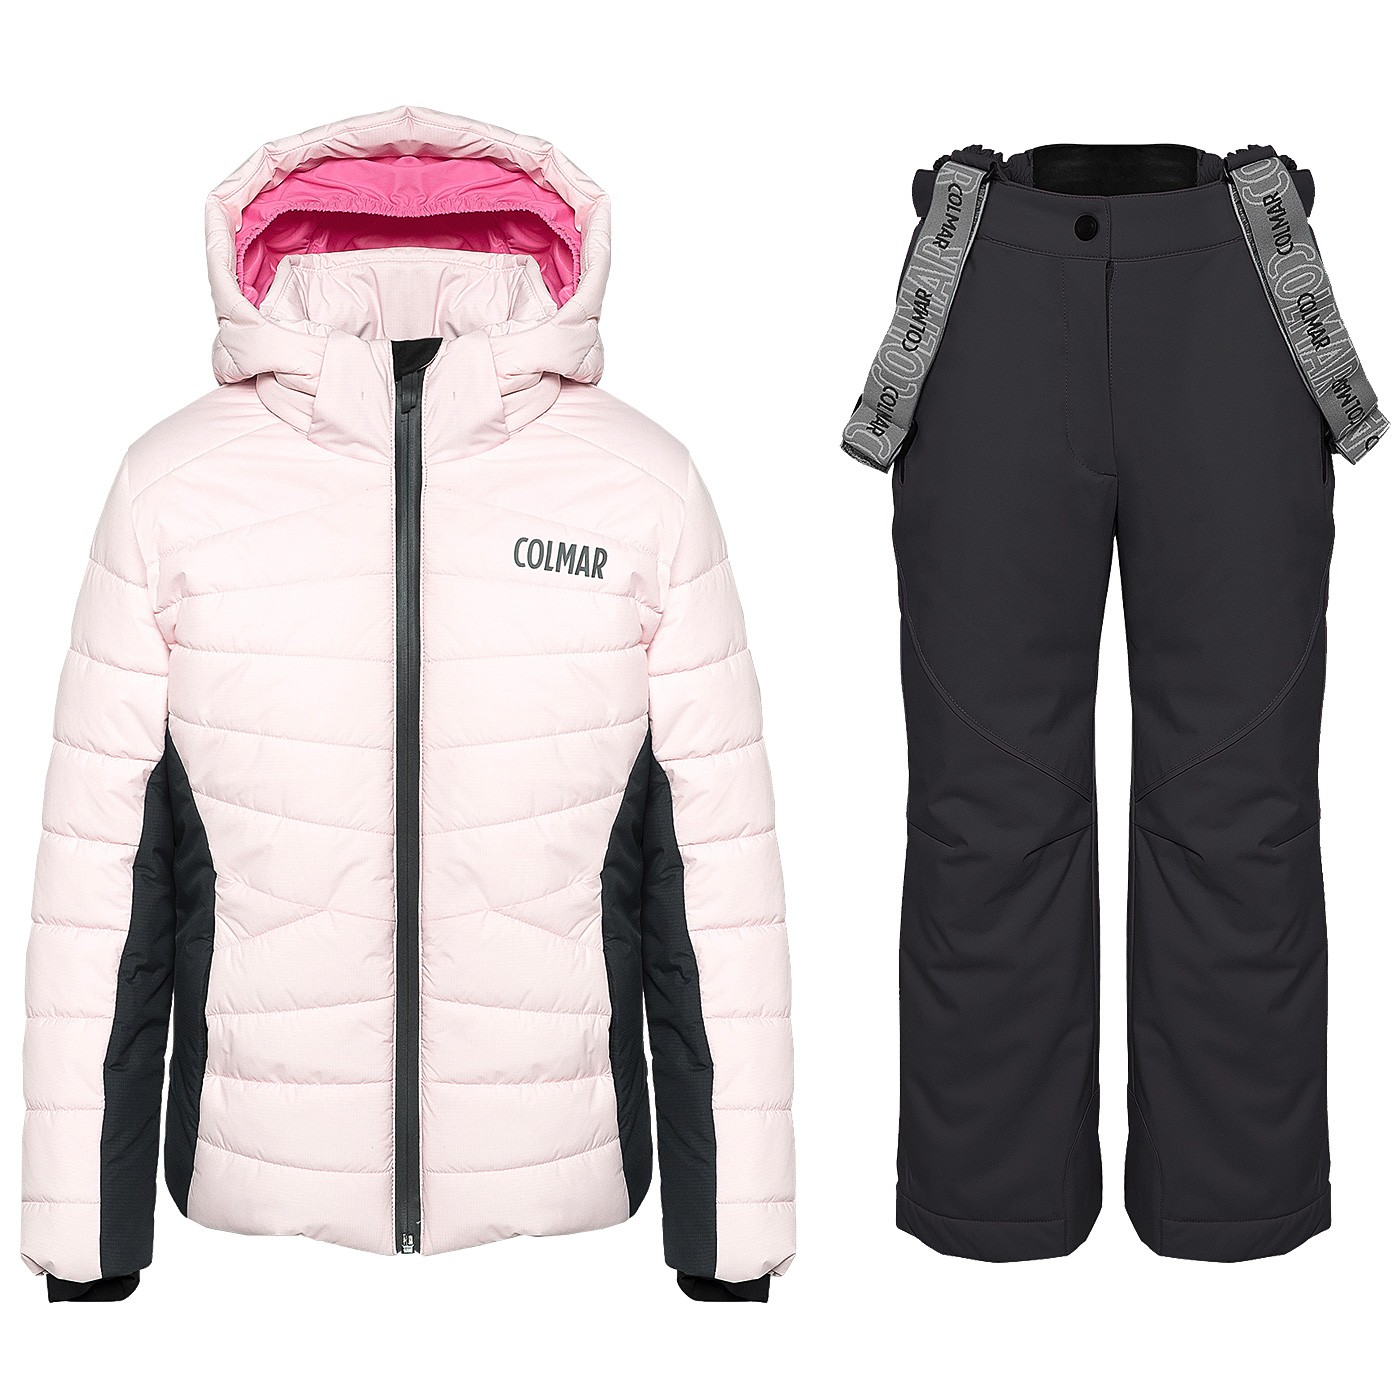 cheap for discount 8f934 1cfe6 Ski suit Colmar Ecovail Girl - Ski clothing